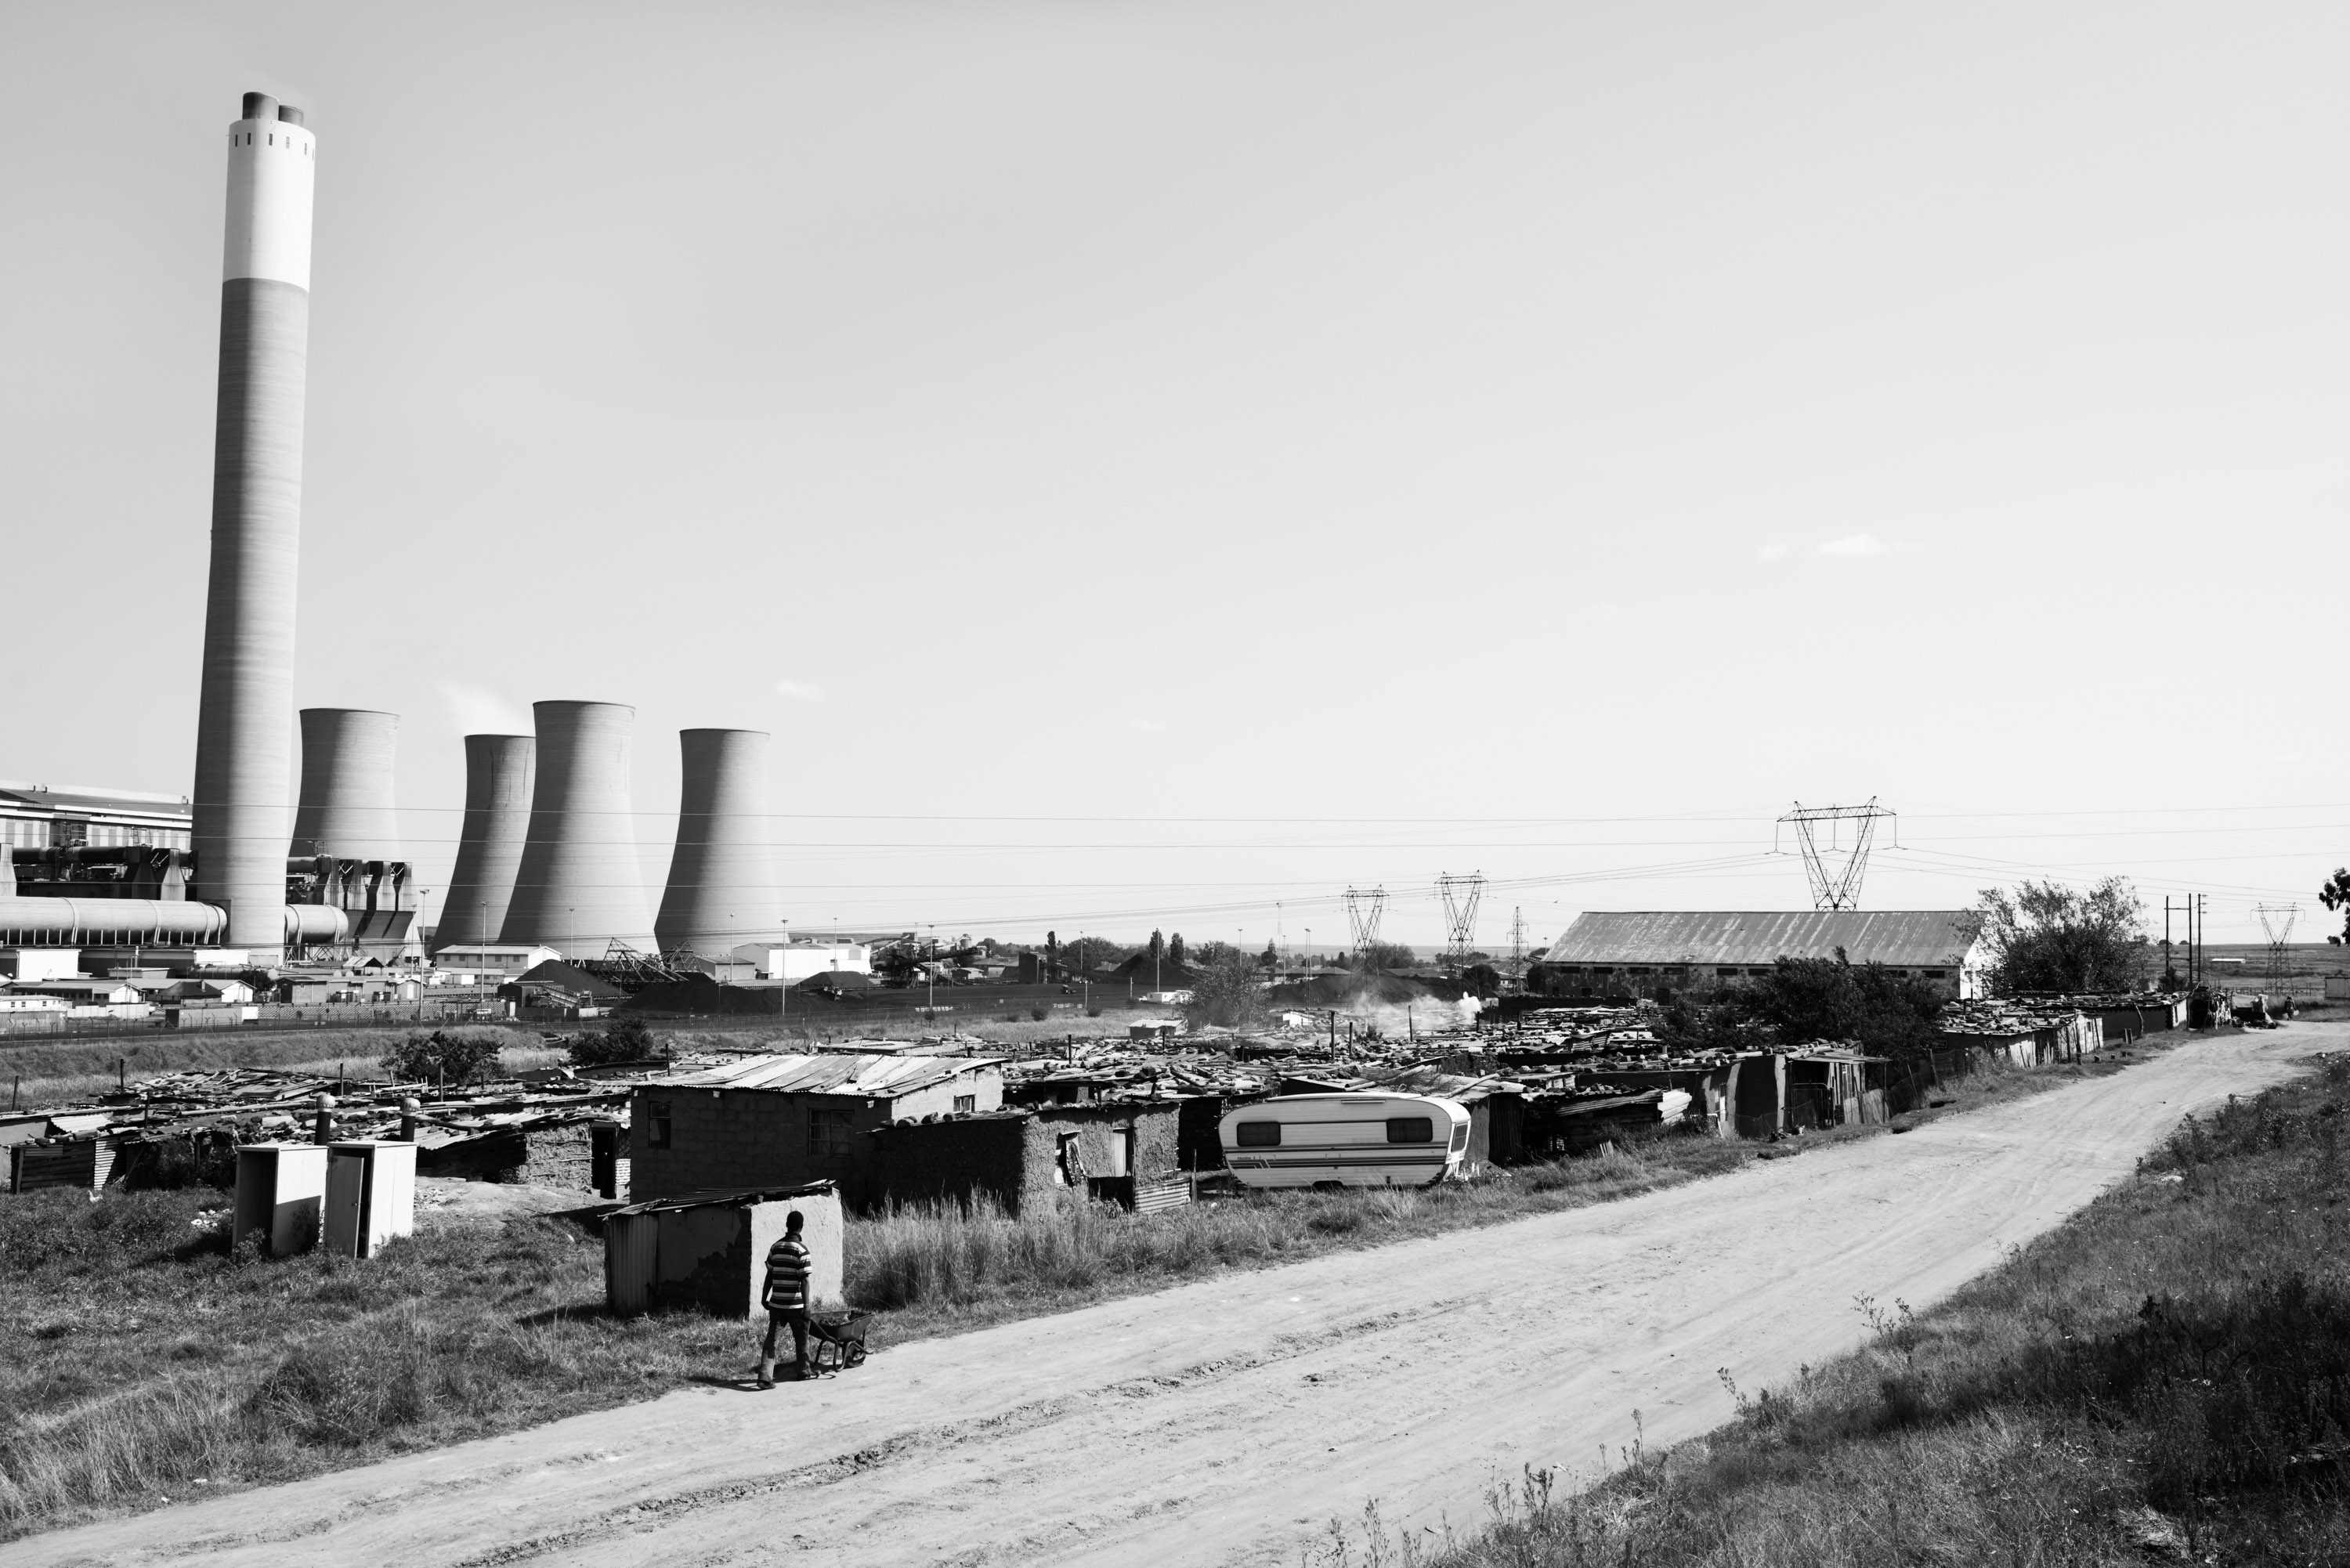 Big House, a settlement next to Komati Power Station. Despite living just a few metres from a power station, the residents of Big House have never had formal access to electricity. Komati, Mpumalanga.